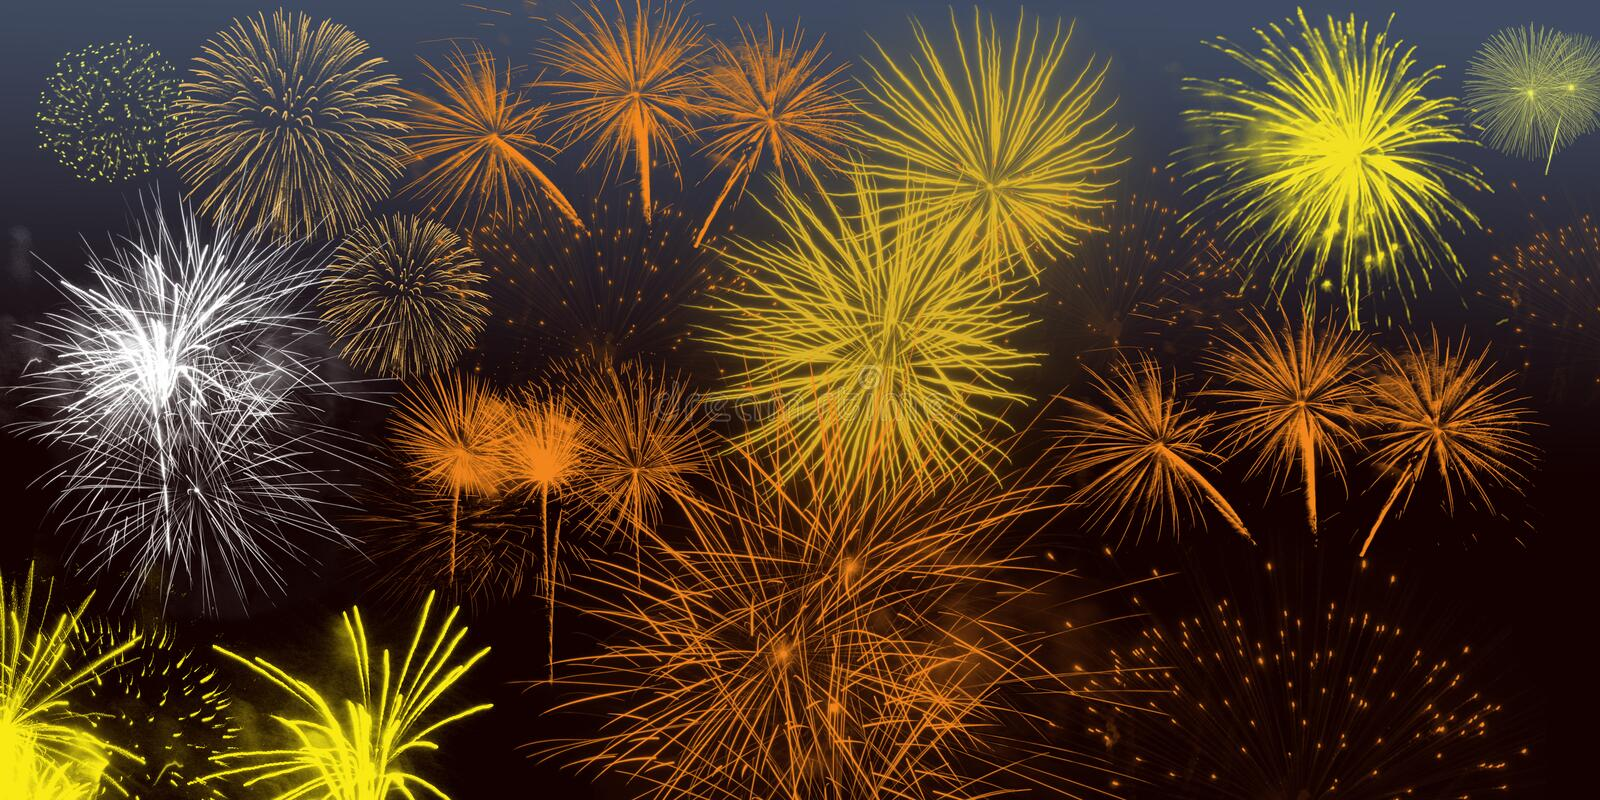 1 075 597 Banner Photos Free Royalty Free Stock Photos From Dreamstime